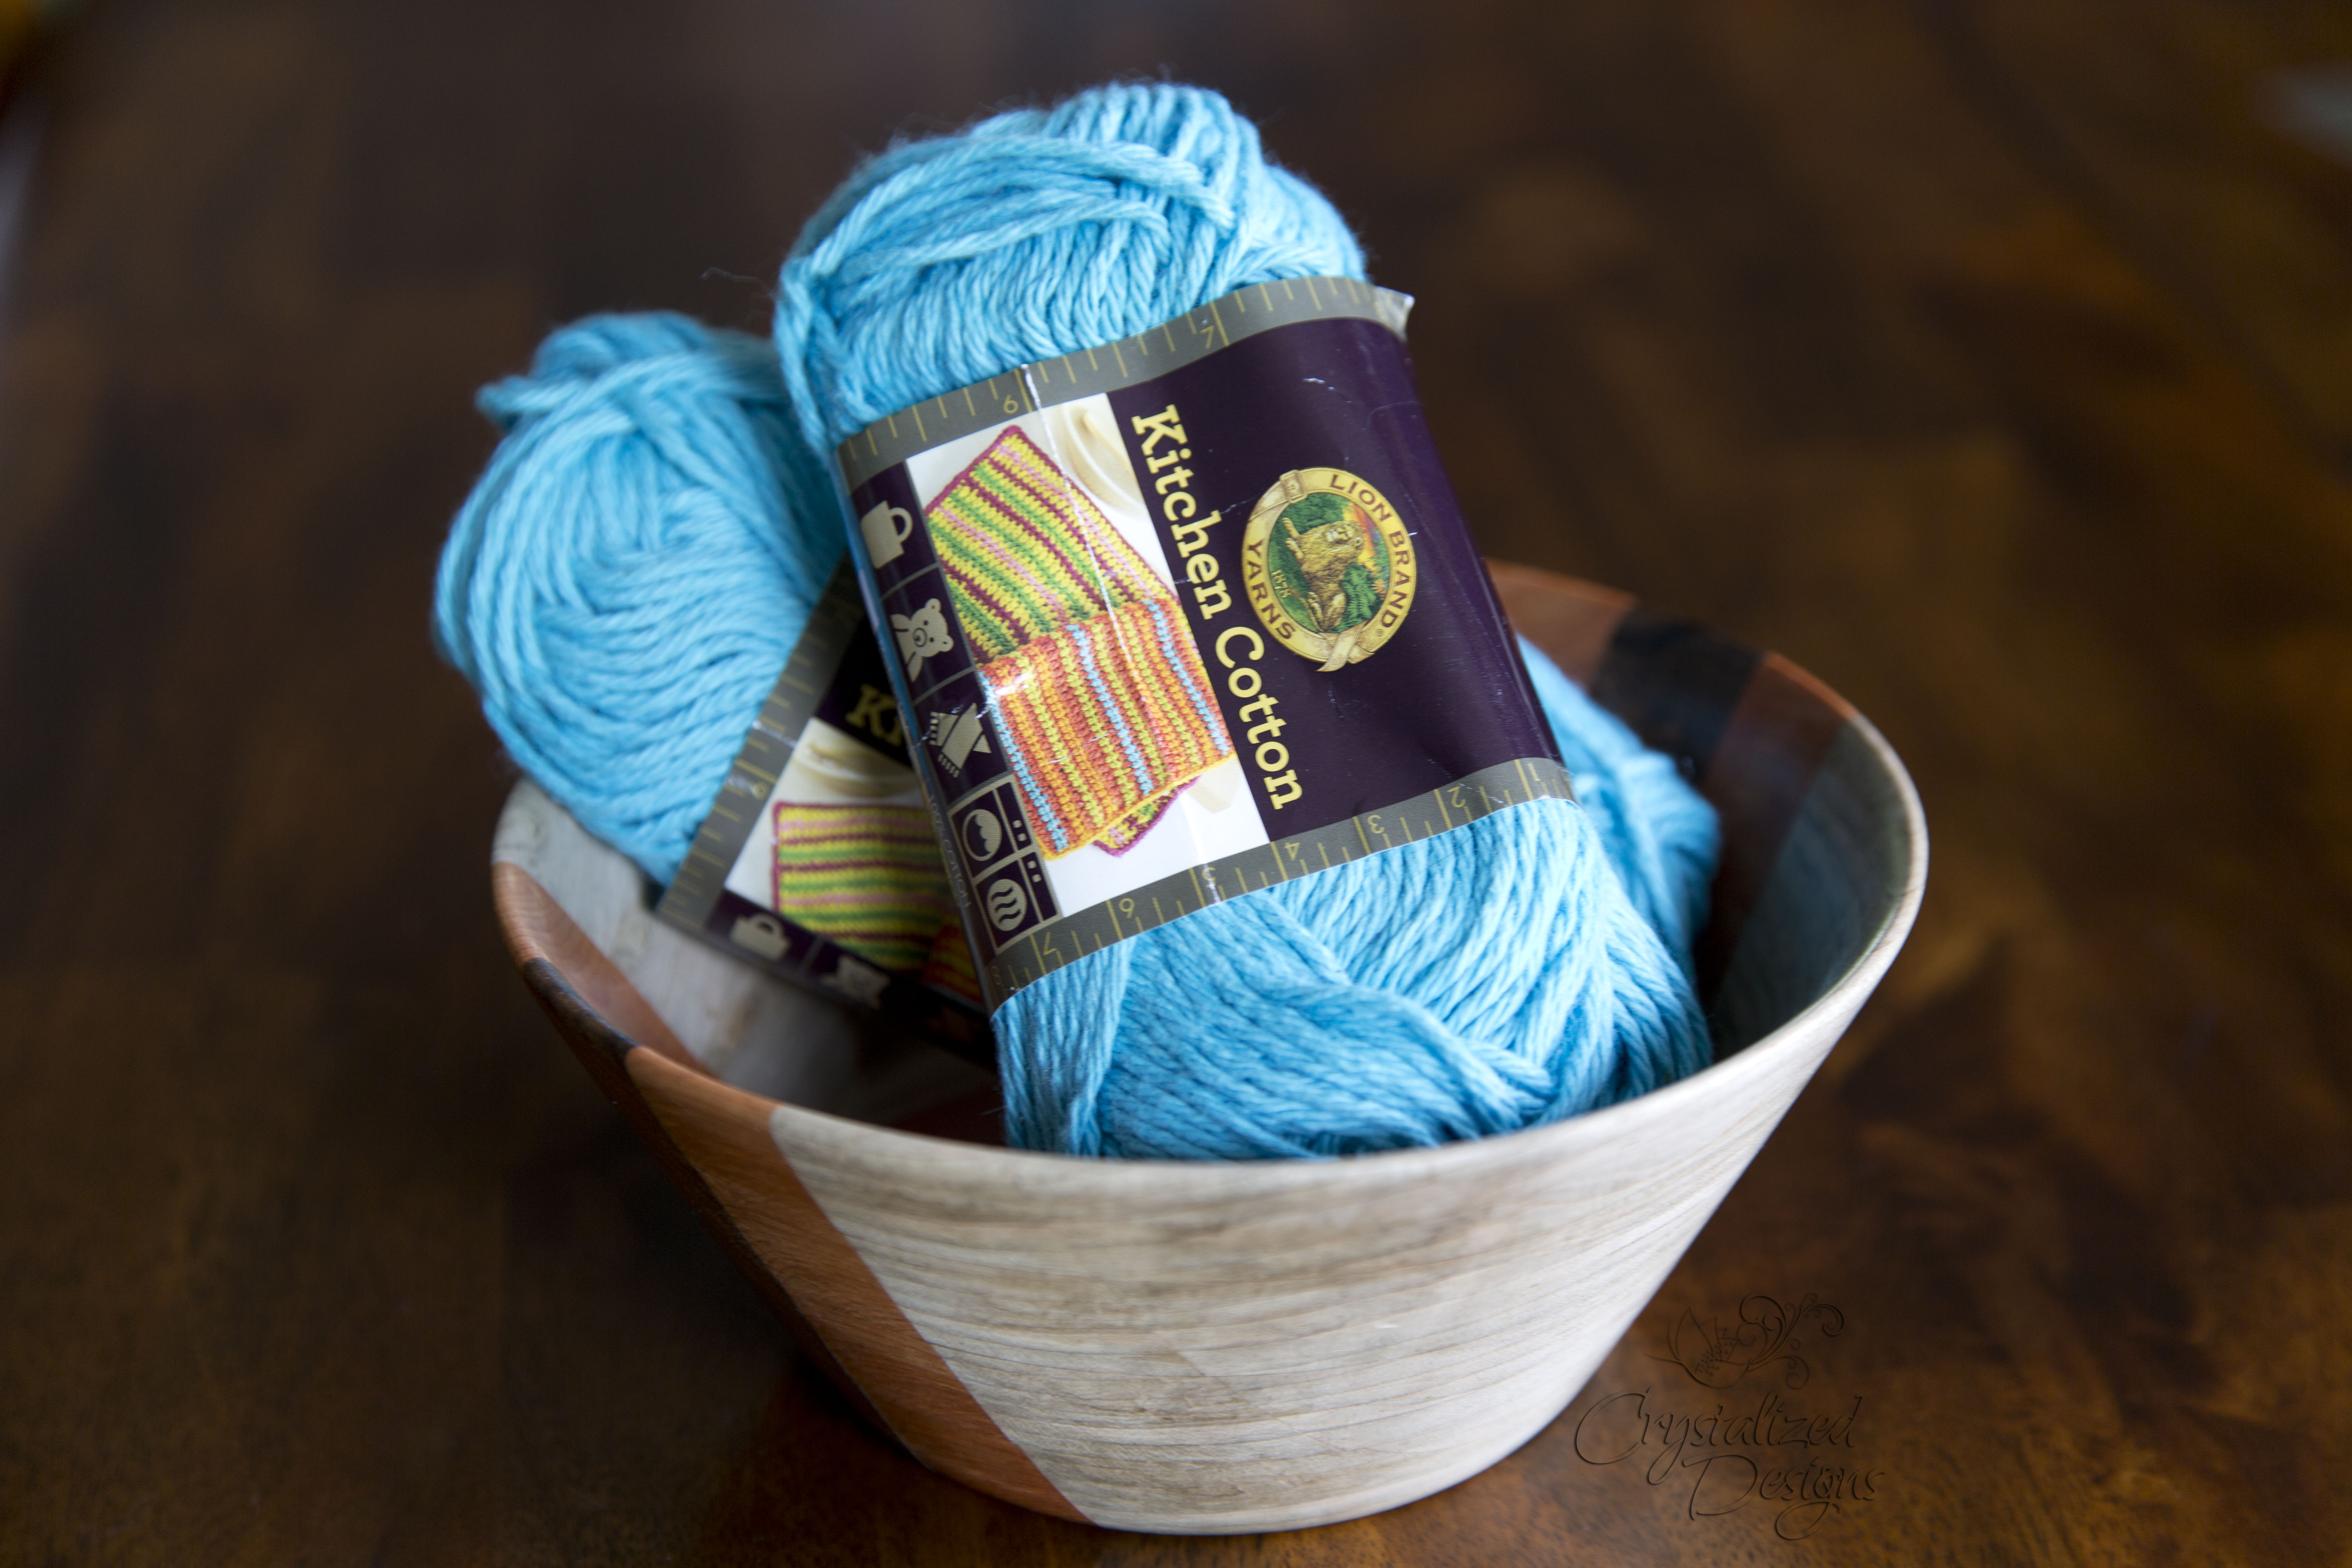 Kitchen Cotton Yarn Review by Crystalized Designs